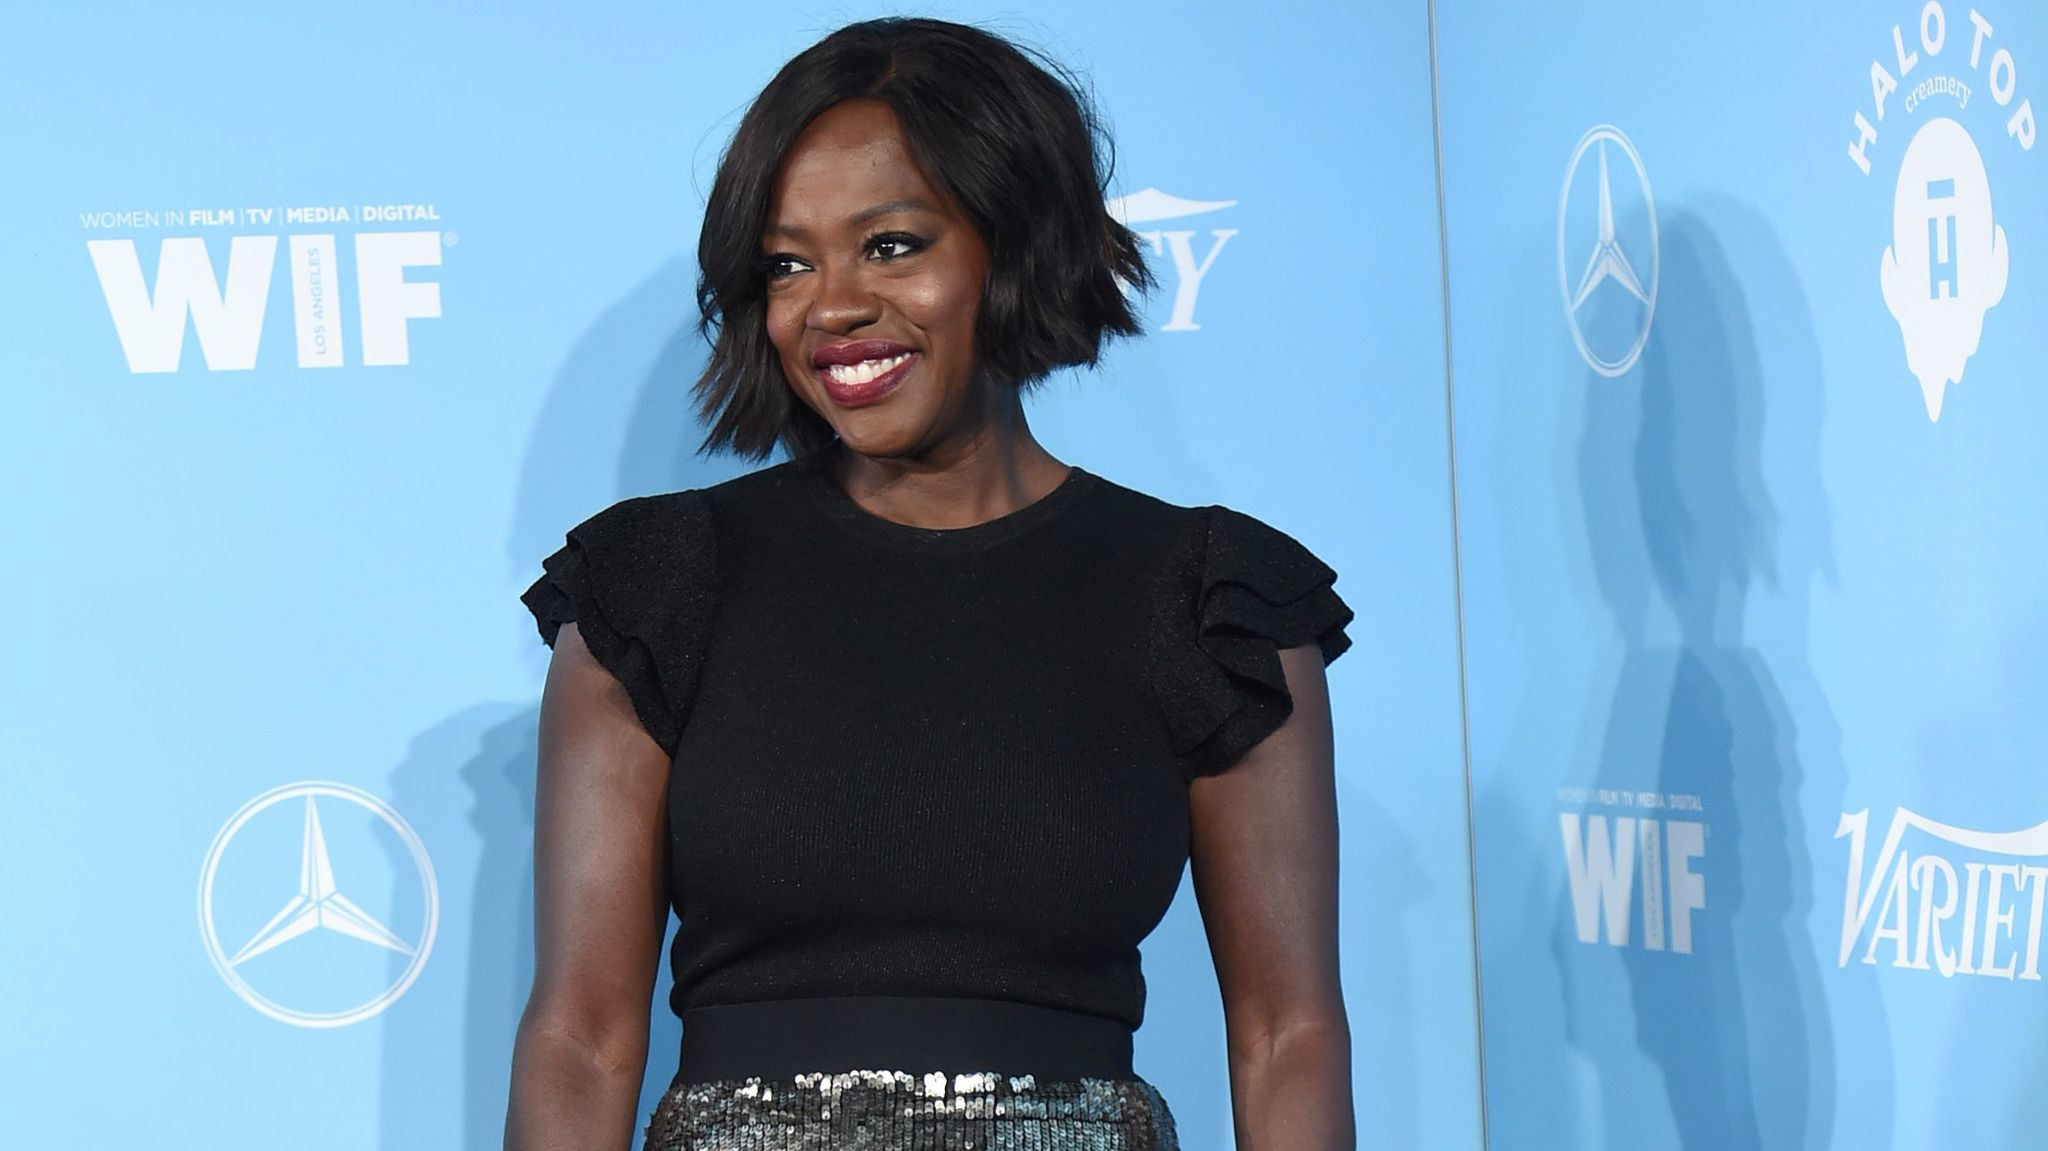 Emmy nominee Viola Davis attends the Variety and Women in Film celebration.